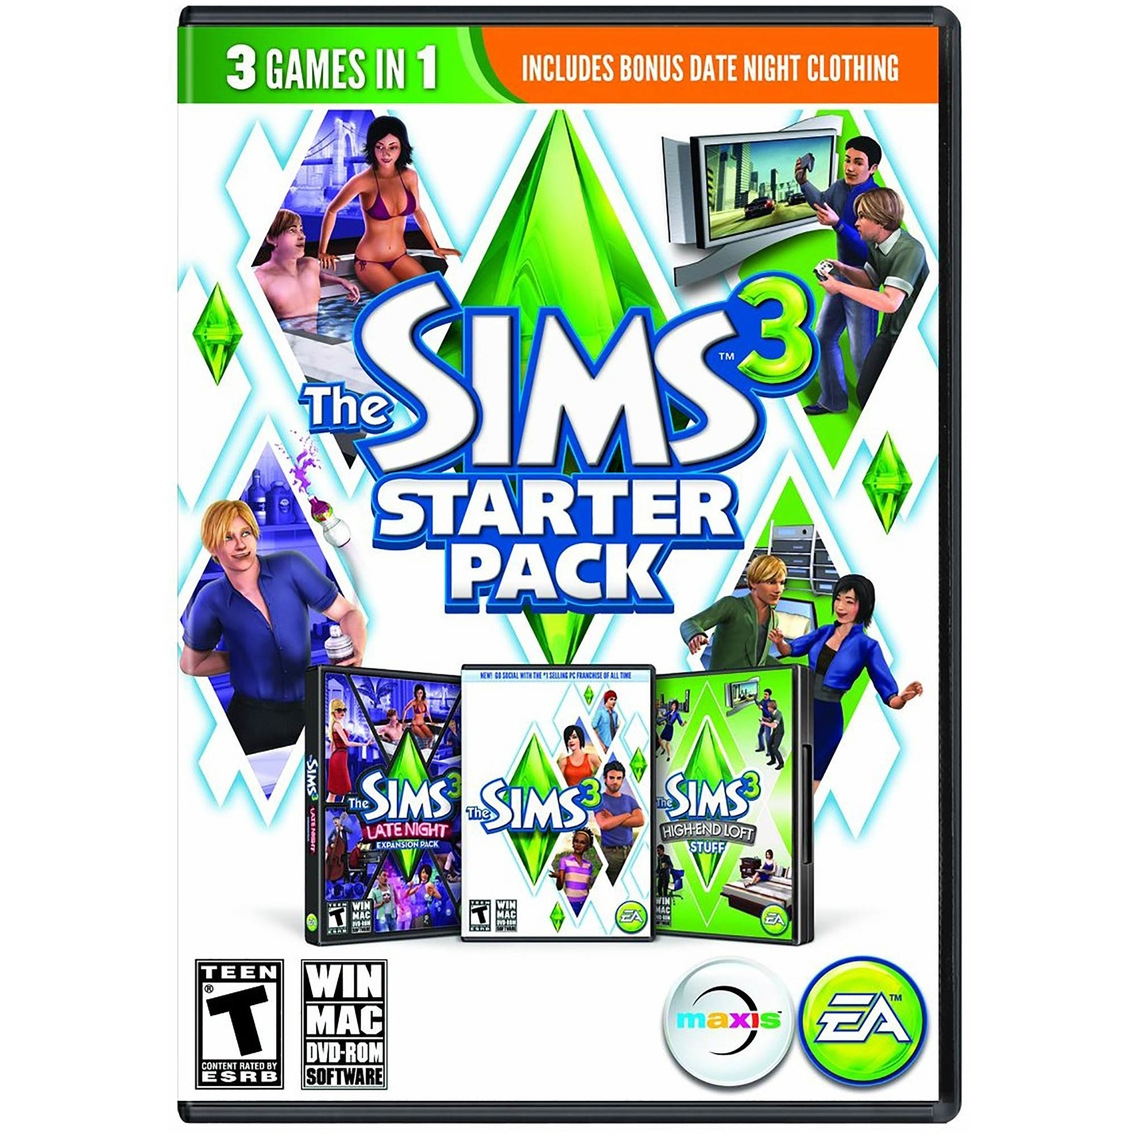 The Sims 3 Starter Pack Pc Pc Games Electronics Shop The